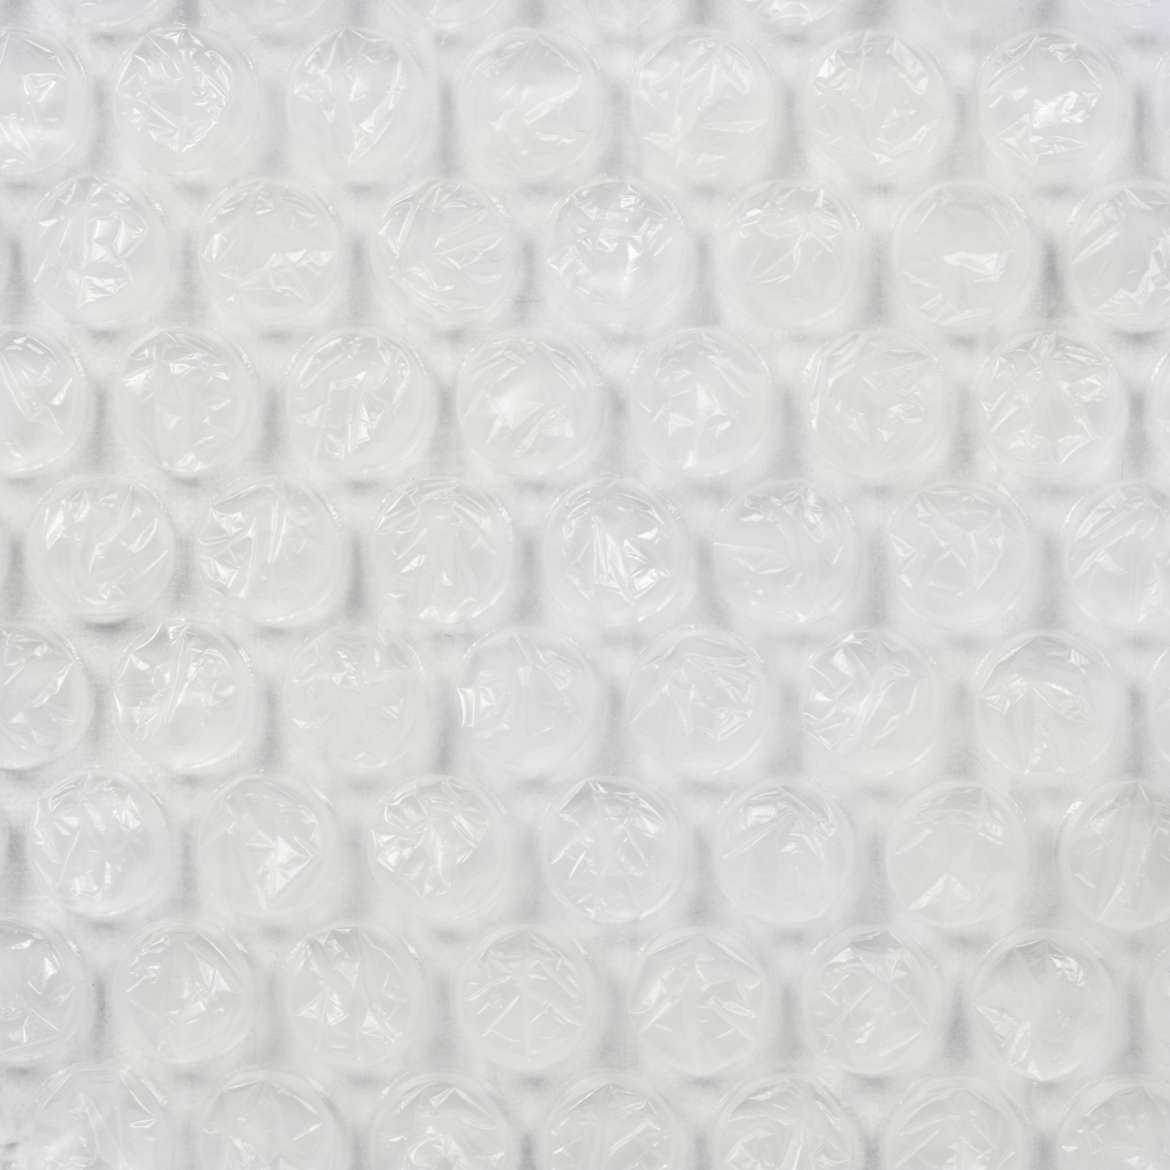 Original Bubble Wrap® Cushioning